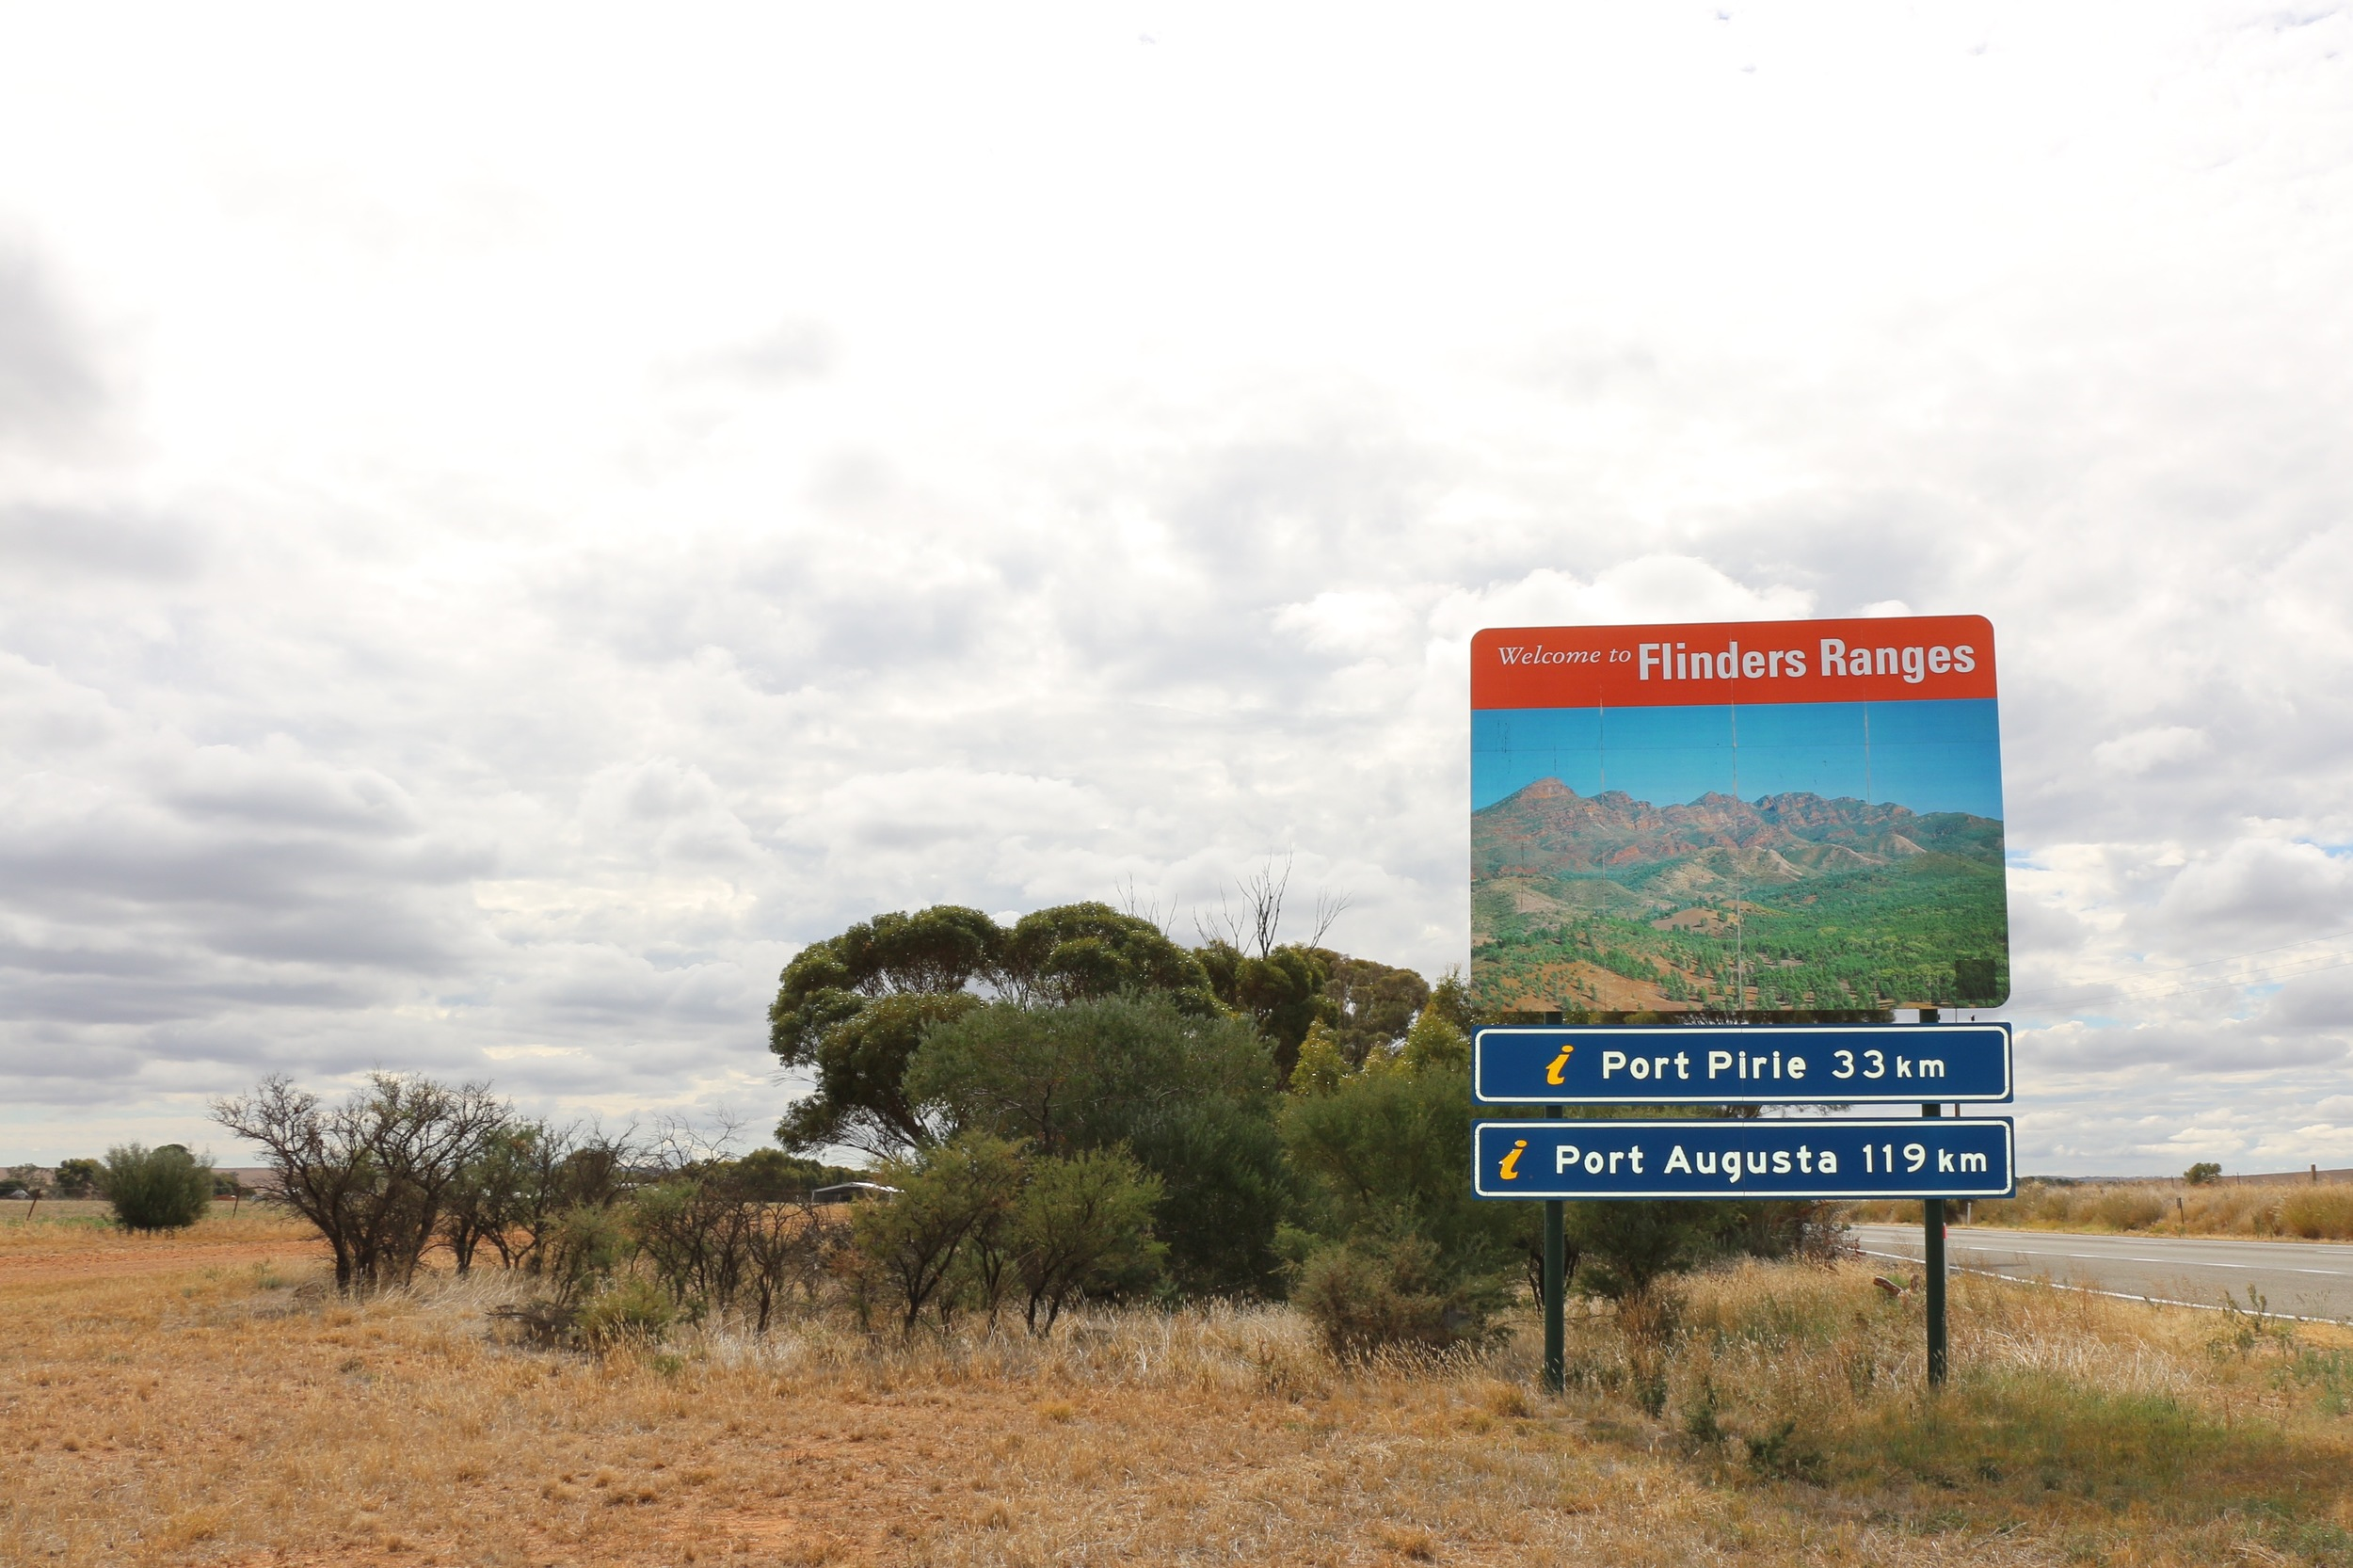 Flinders Ranges.jpg